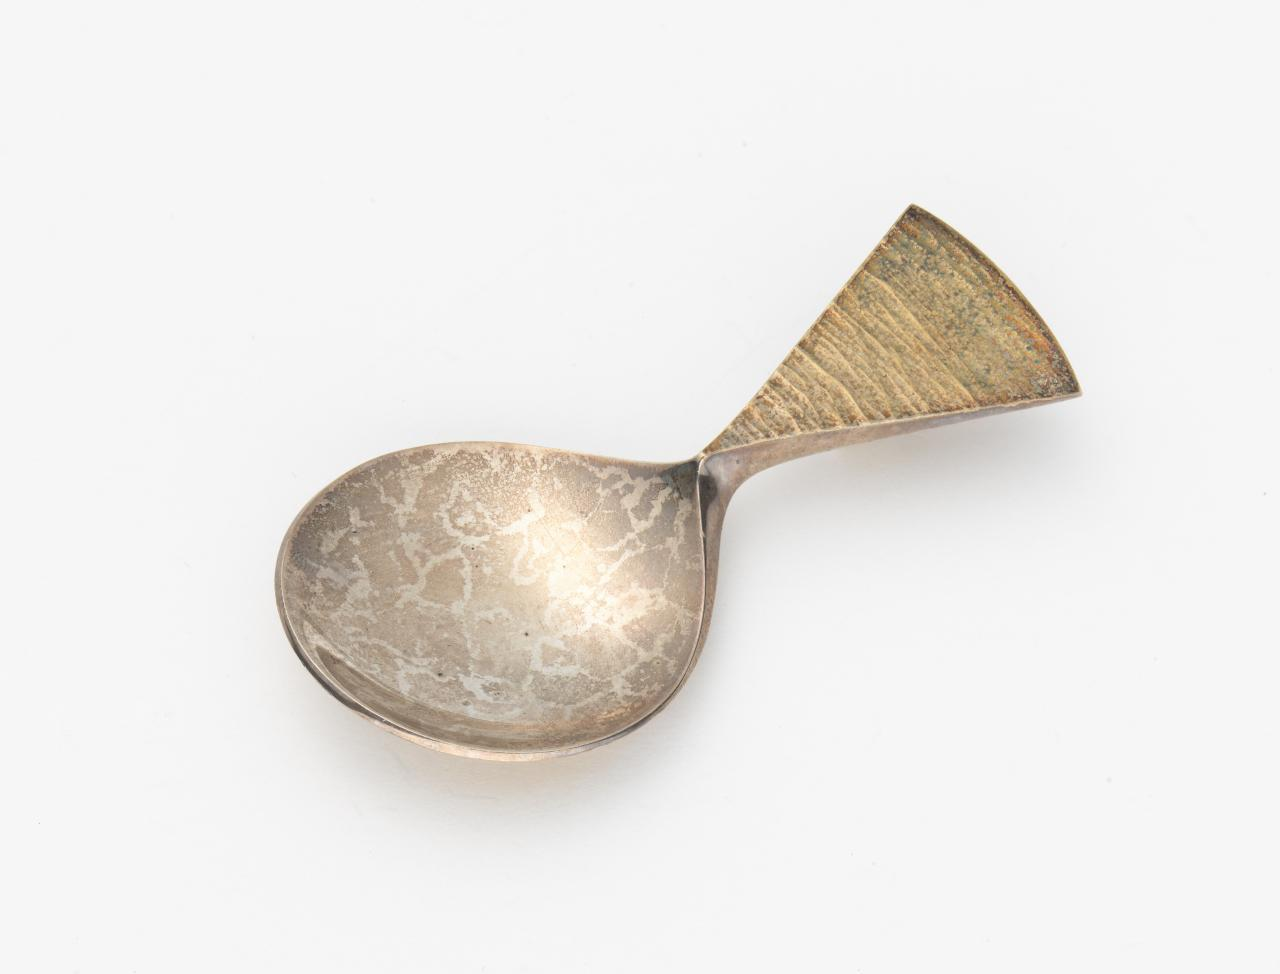 Caddy spoon